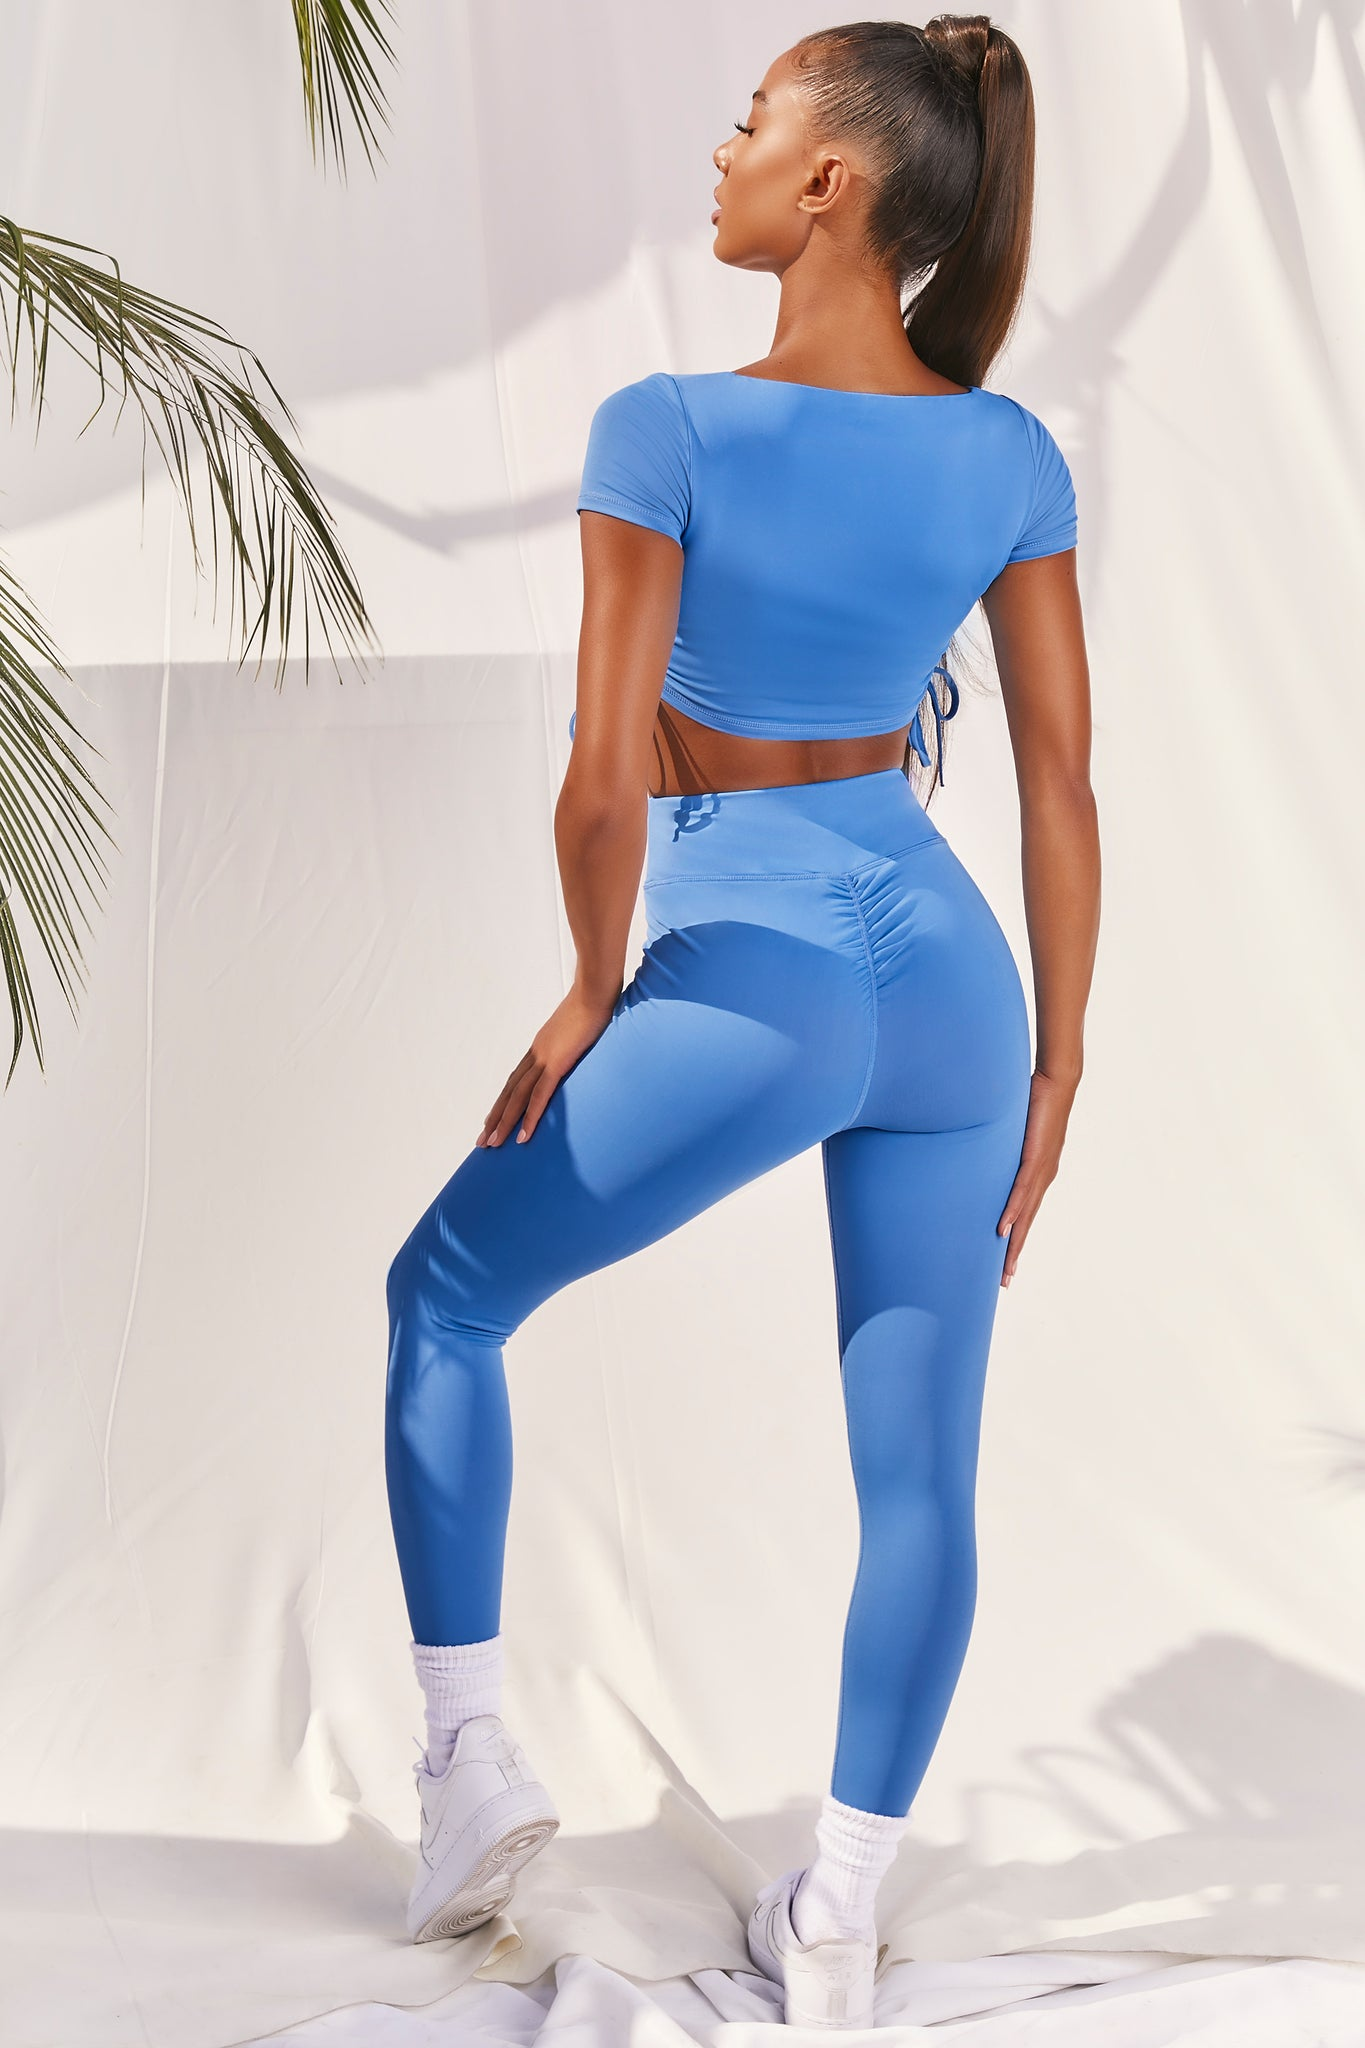 Plain bright blue petite slinky high waisted full length gym leggings with rear ruched seam. Image 3 of 6.